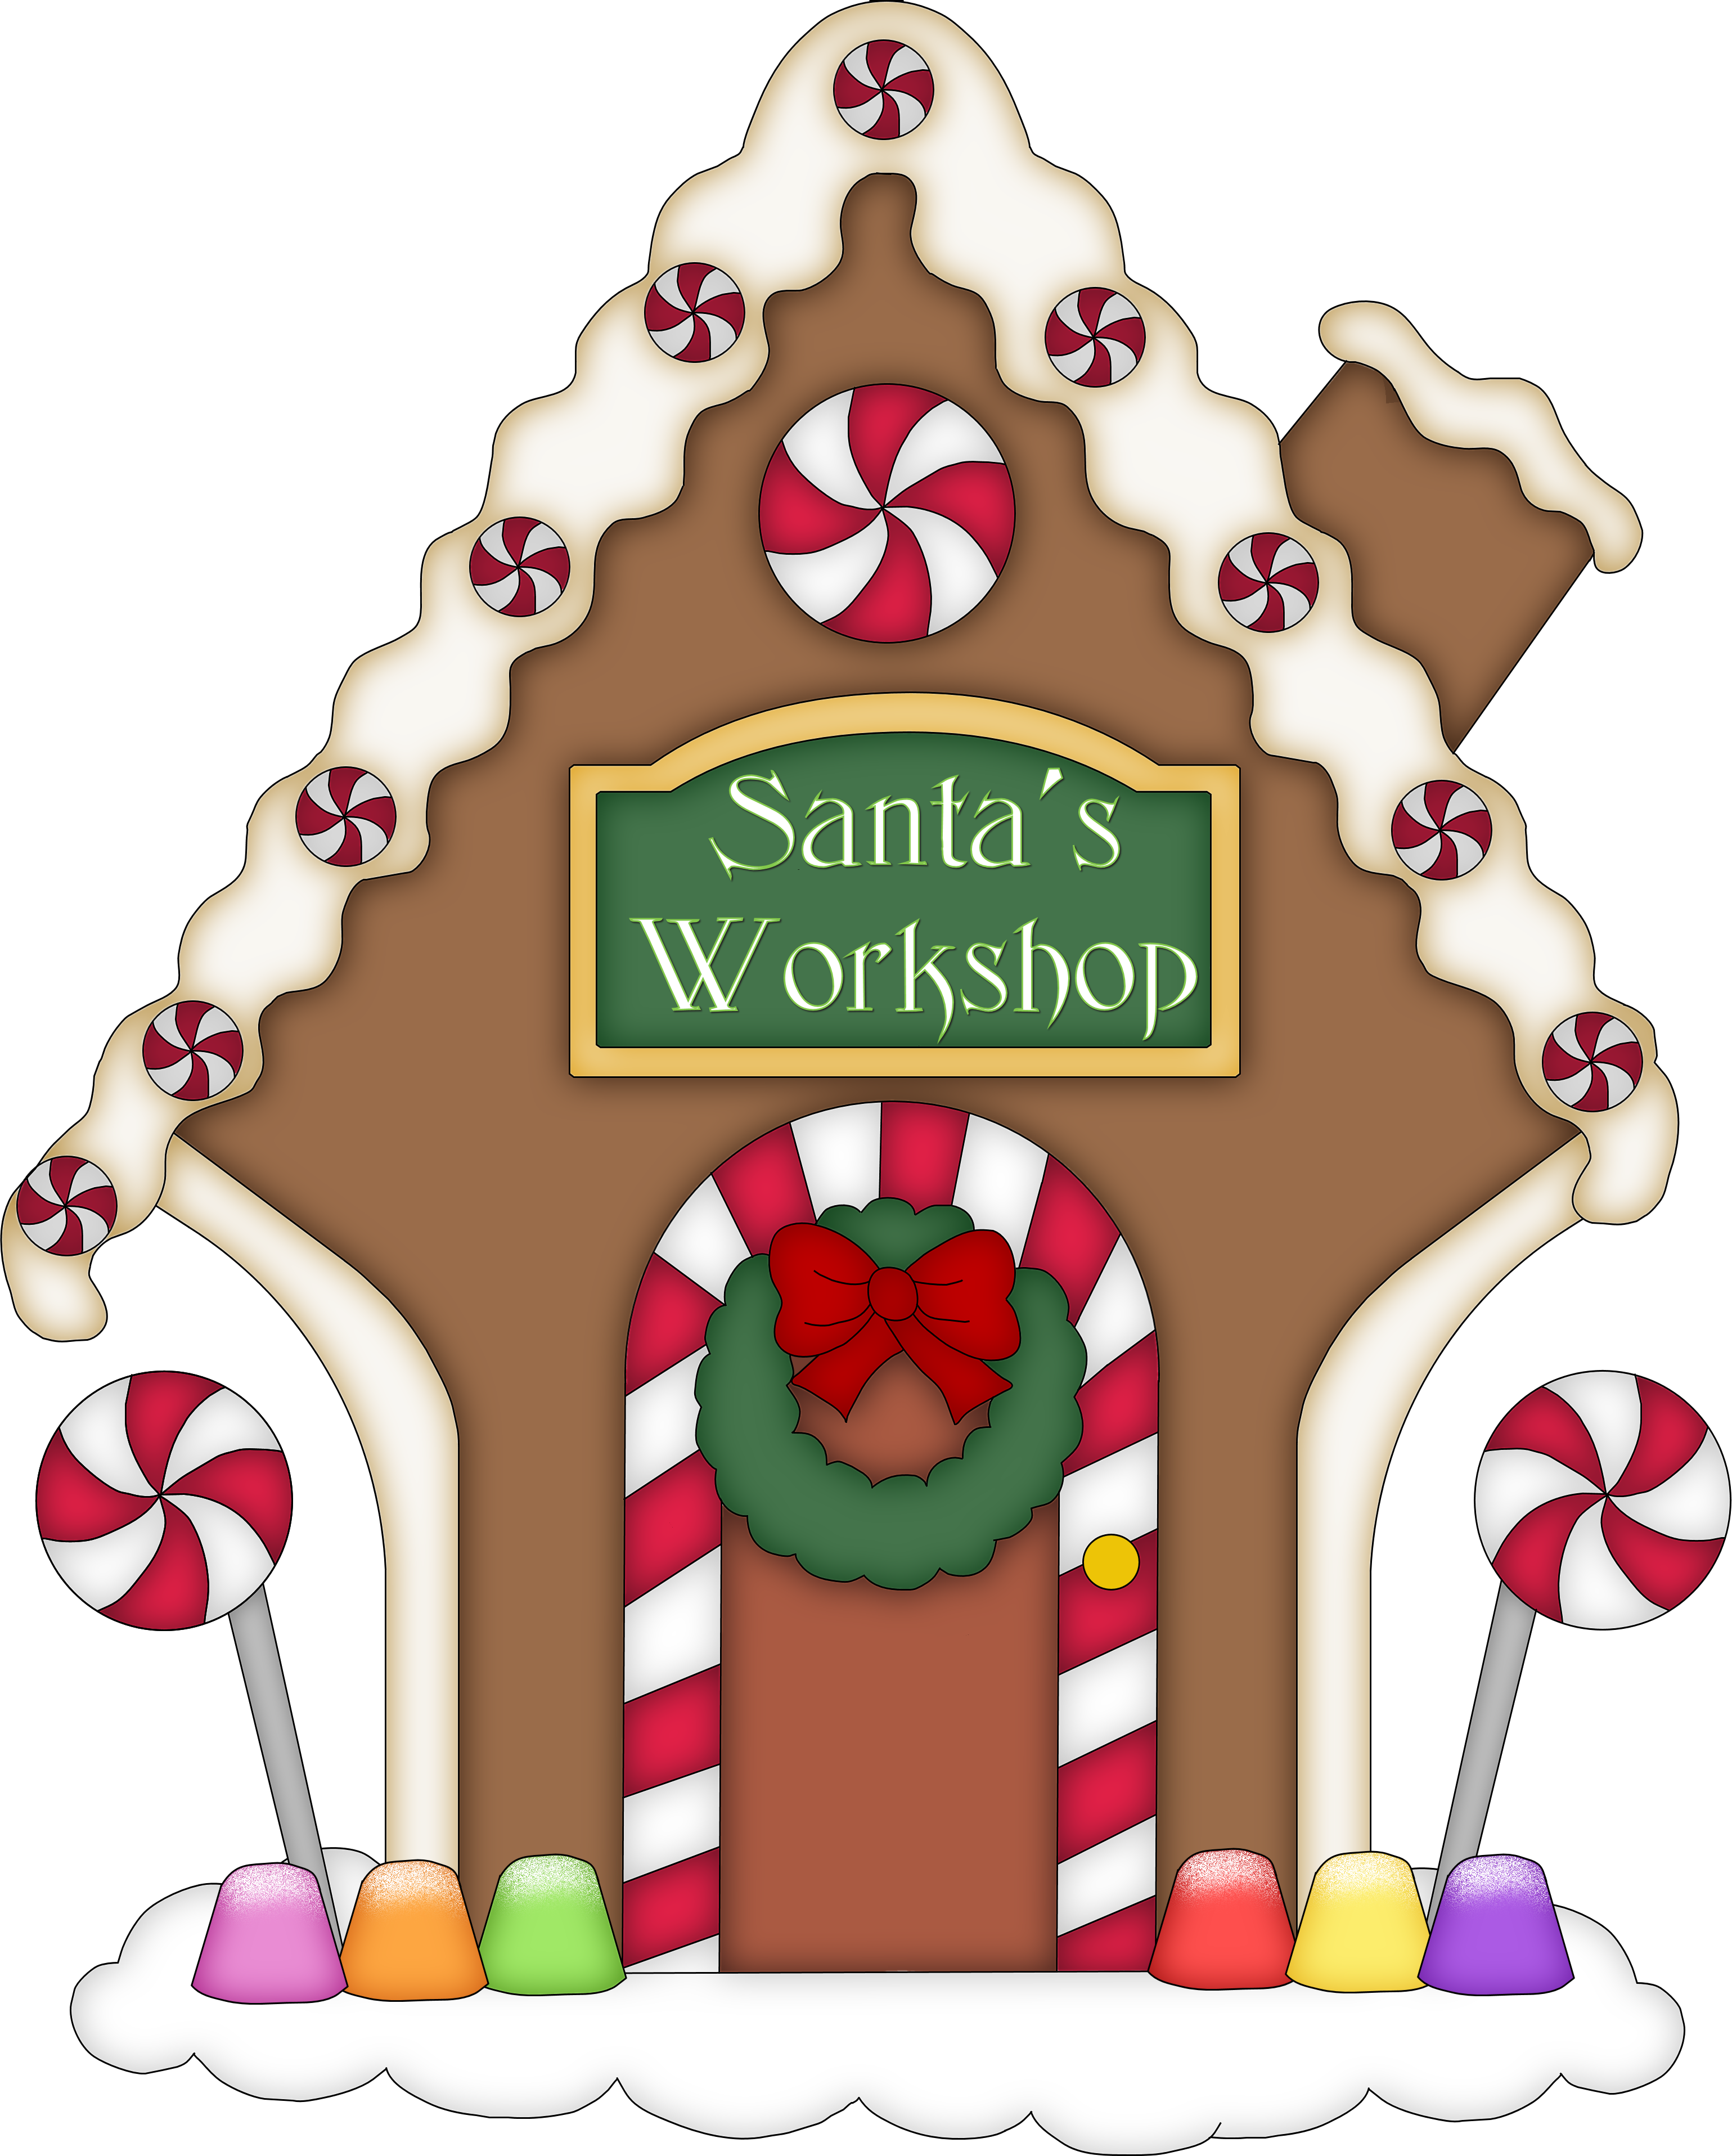 free gingerbread house clipart - photo #5